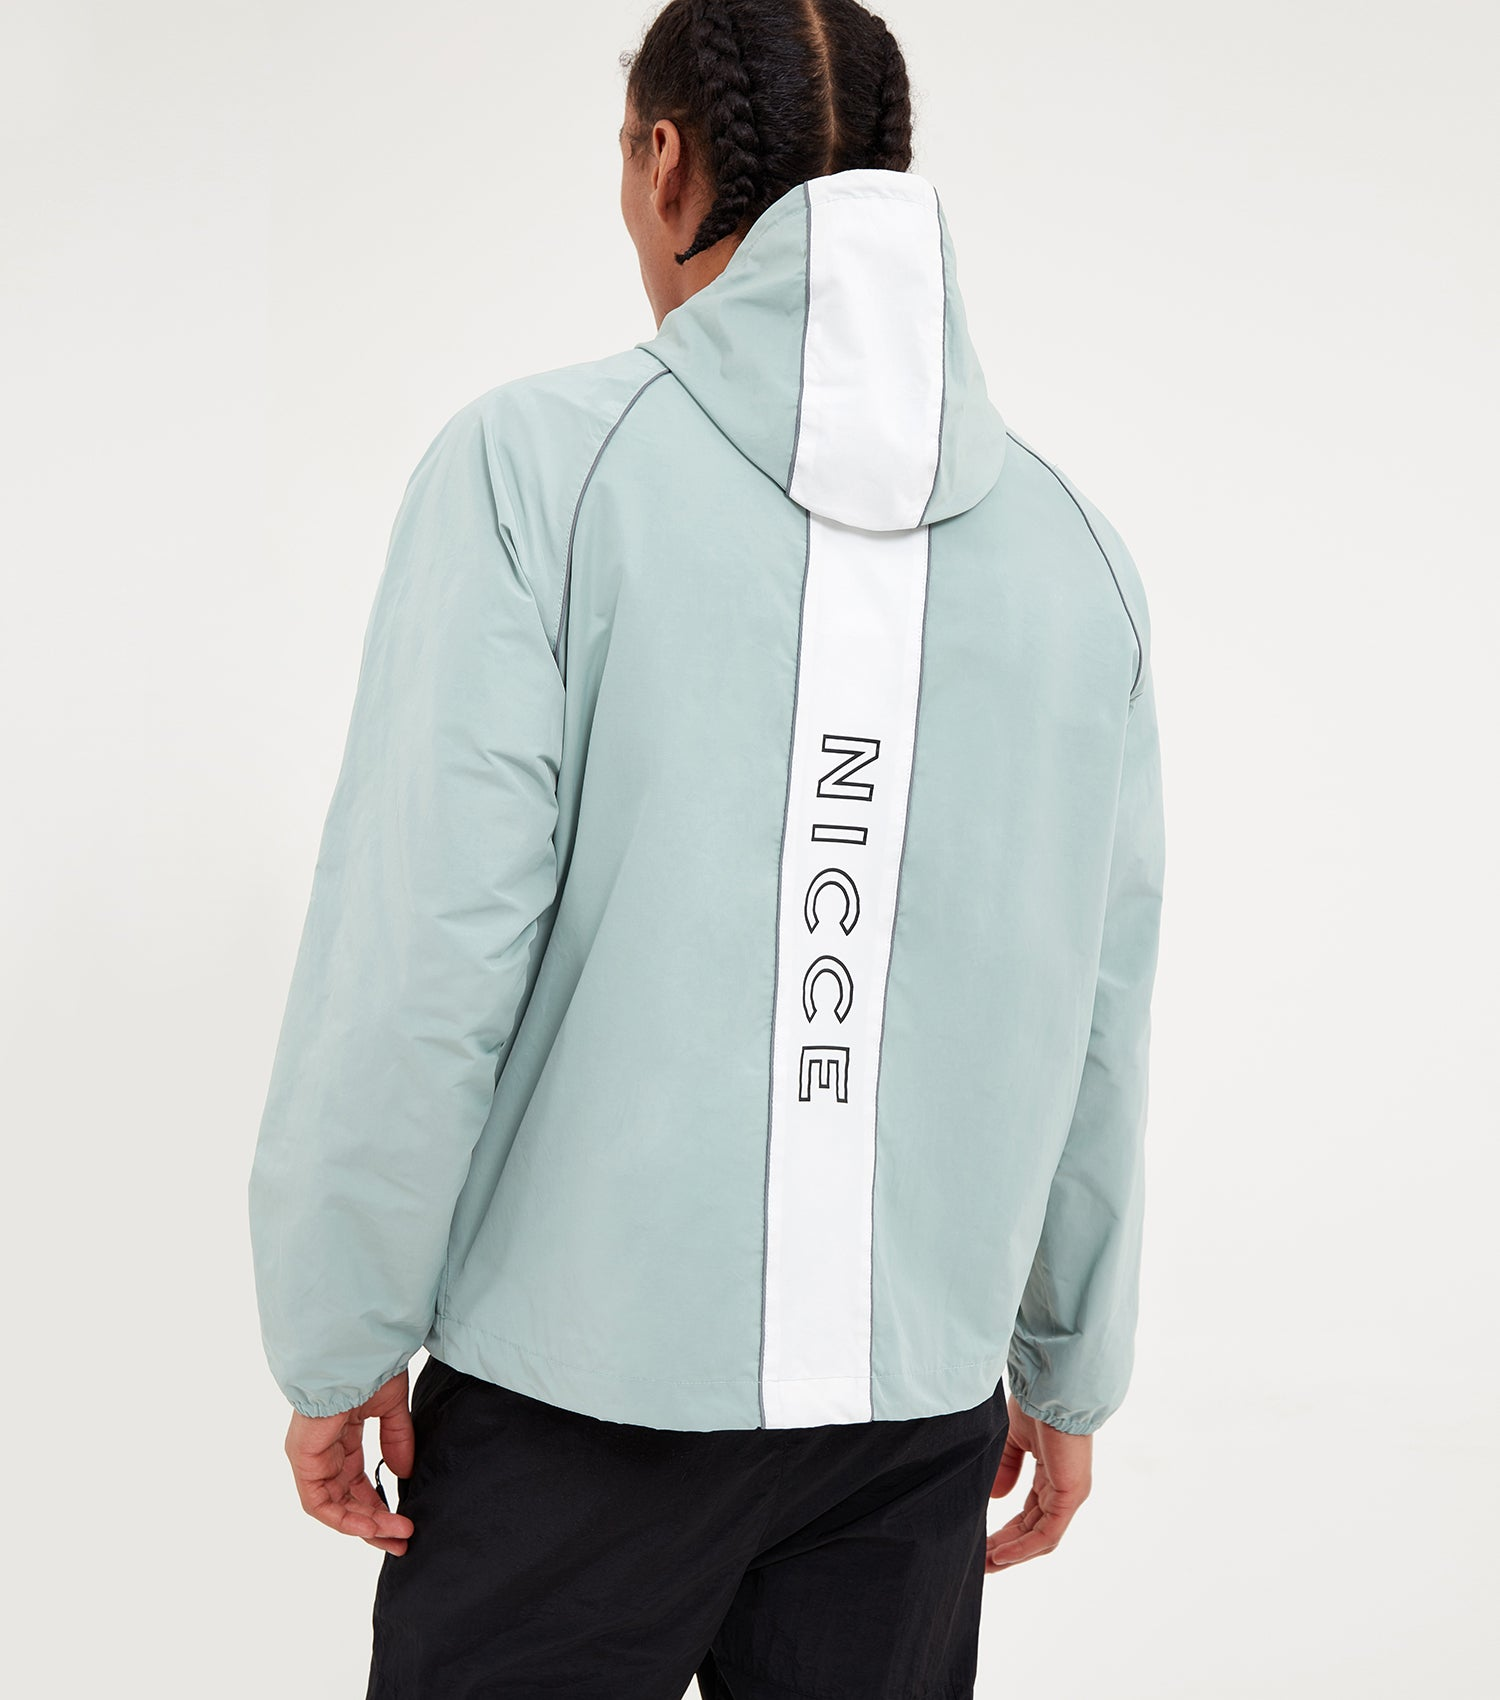 NICCE Mens Linear Cagoule | Seafoam/White, Outerwear